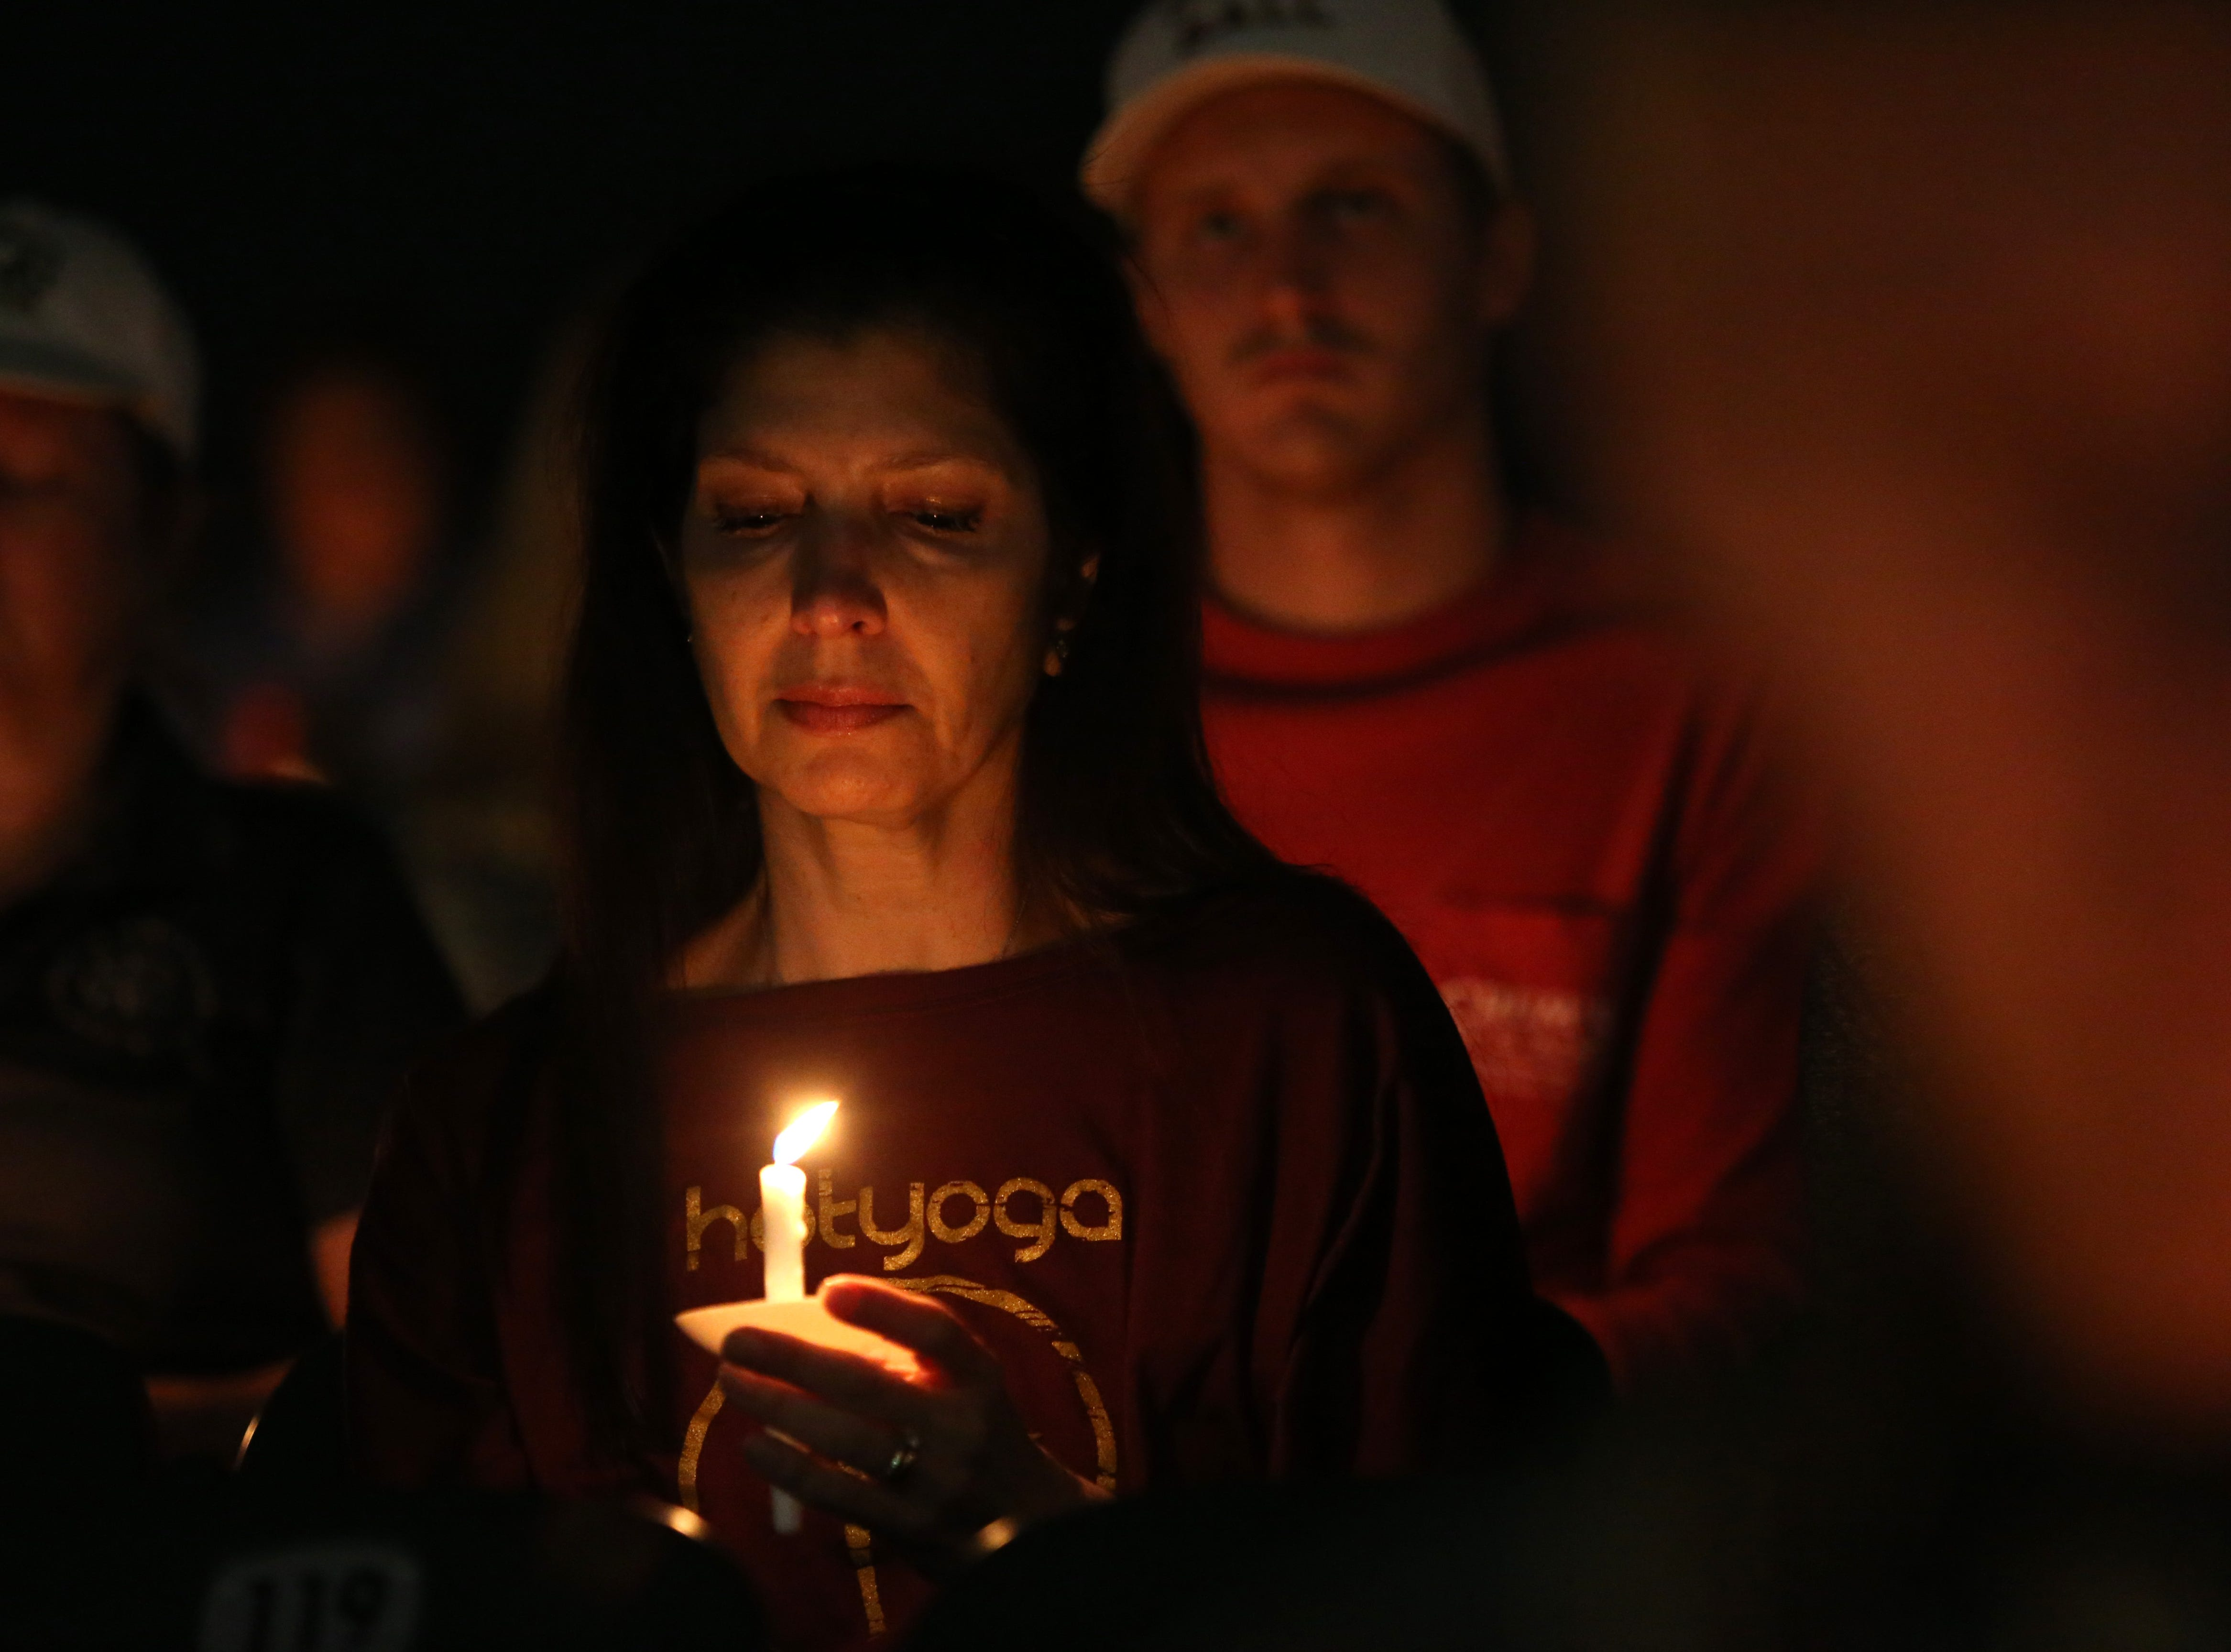 Hundreds gather for a vigil at the Hope, Healing, Harmony community event in honor of  Maura Binkley and Nancy Van Vessem, the two women who were killed during the shooting at Hot Yoga Tallahassee, Cascades Park, Sunday, Nov. 11, 2018.